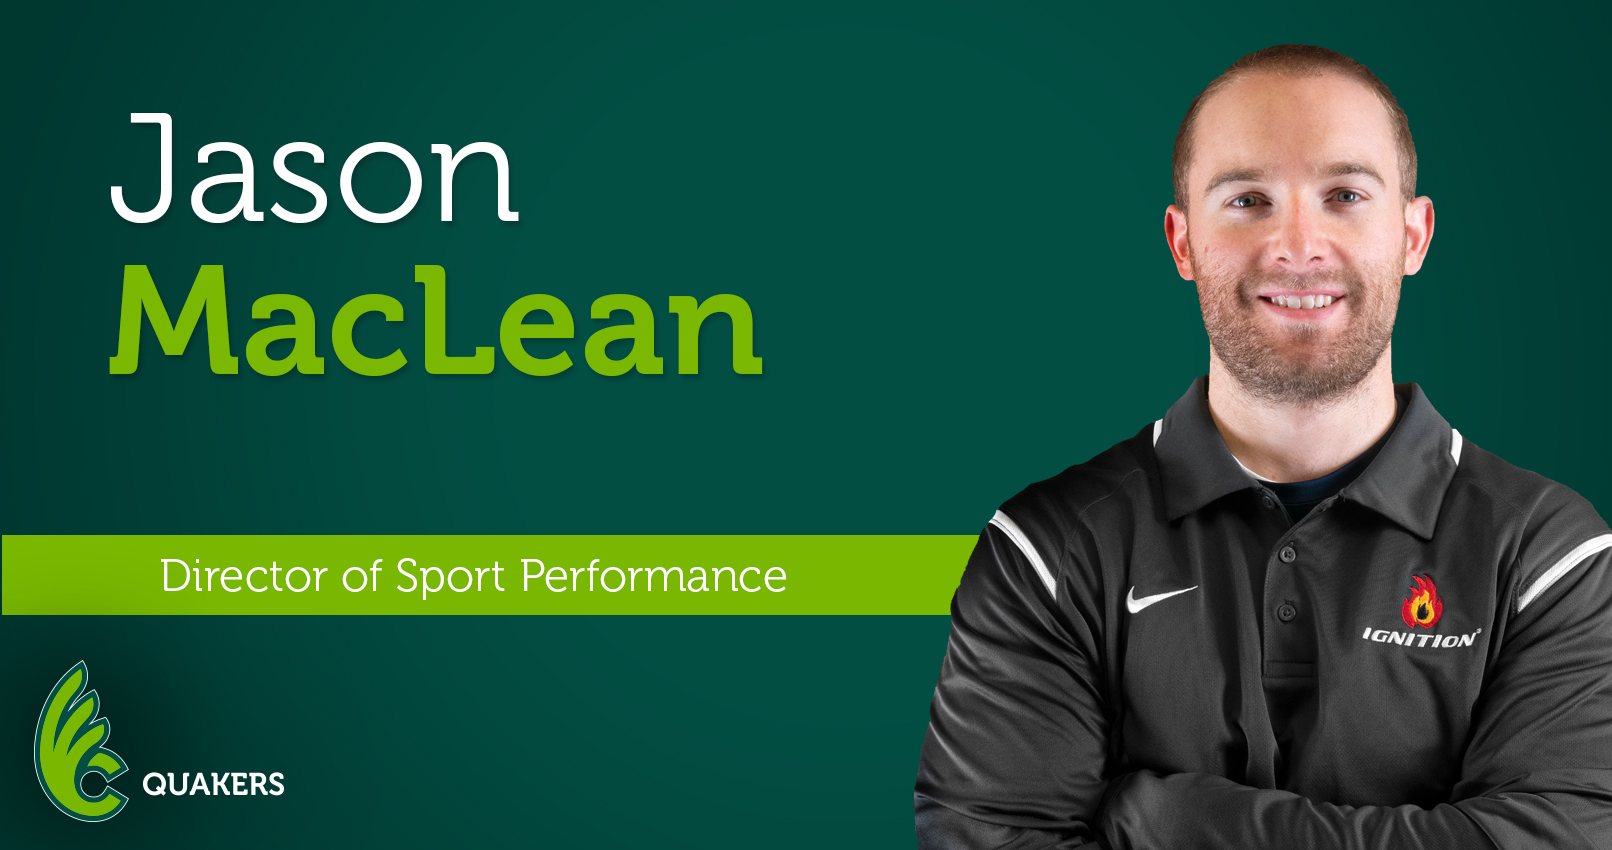 Jason MacLean Hired as New Director of Sport Performance